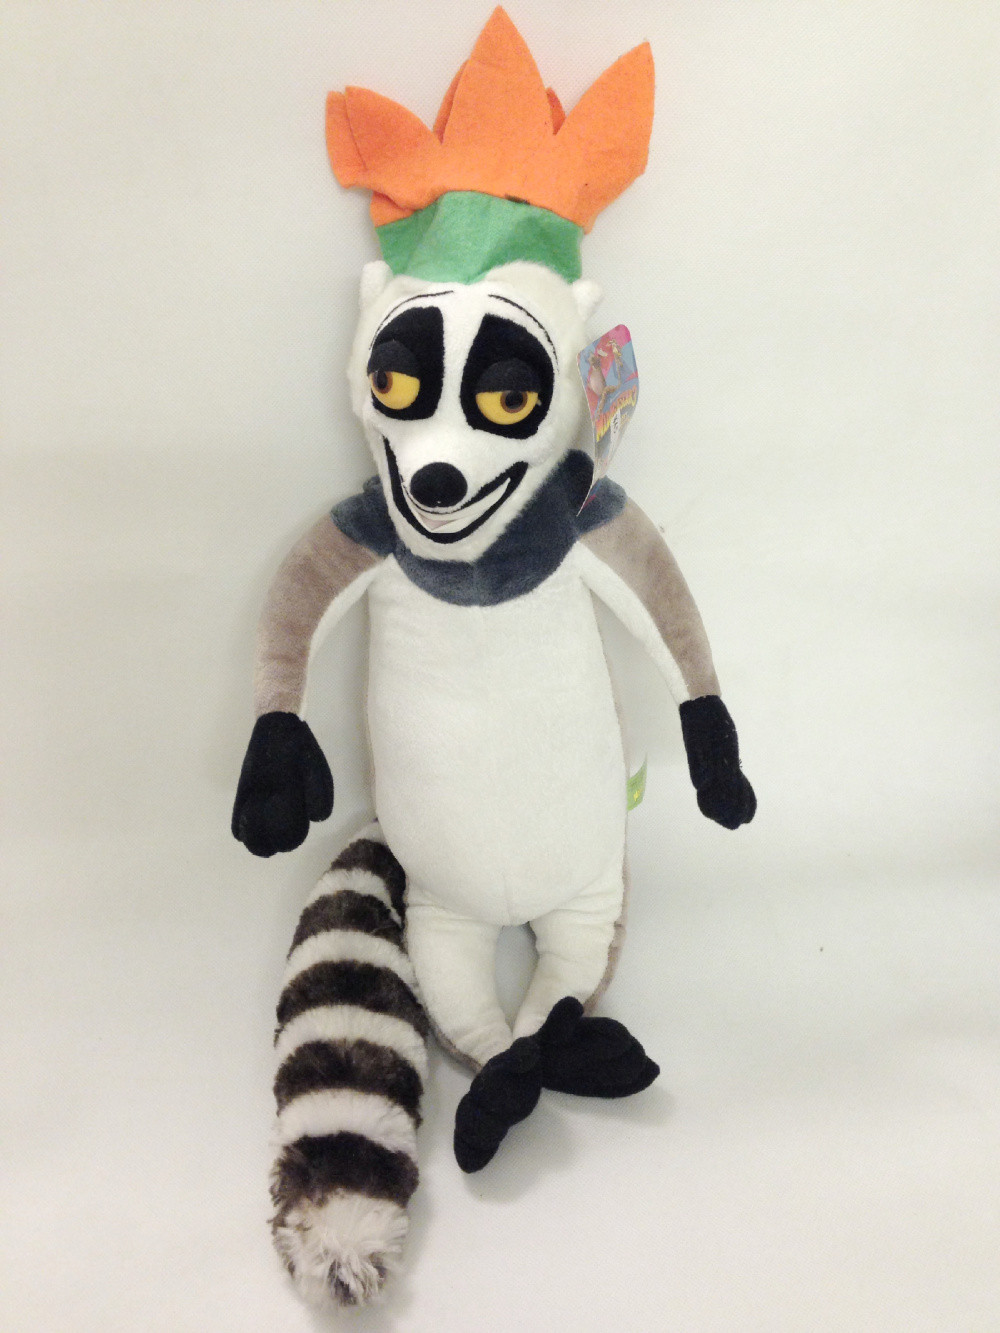 цена  Madagascar King Julien XIII Plush Toy, Lemur Baby Gift, Kids Doll Christmas gifts 30cm  онлайн в 2017 году